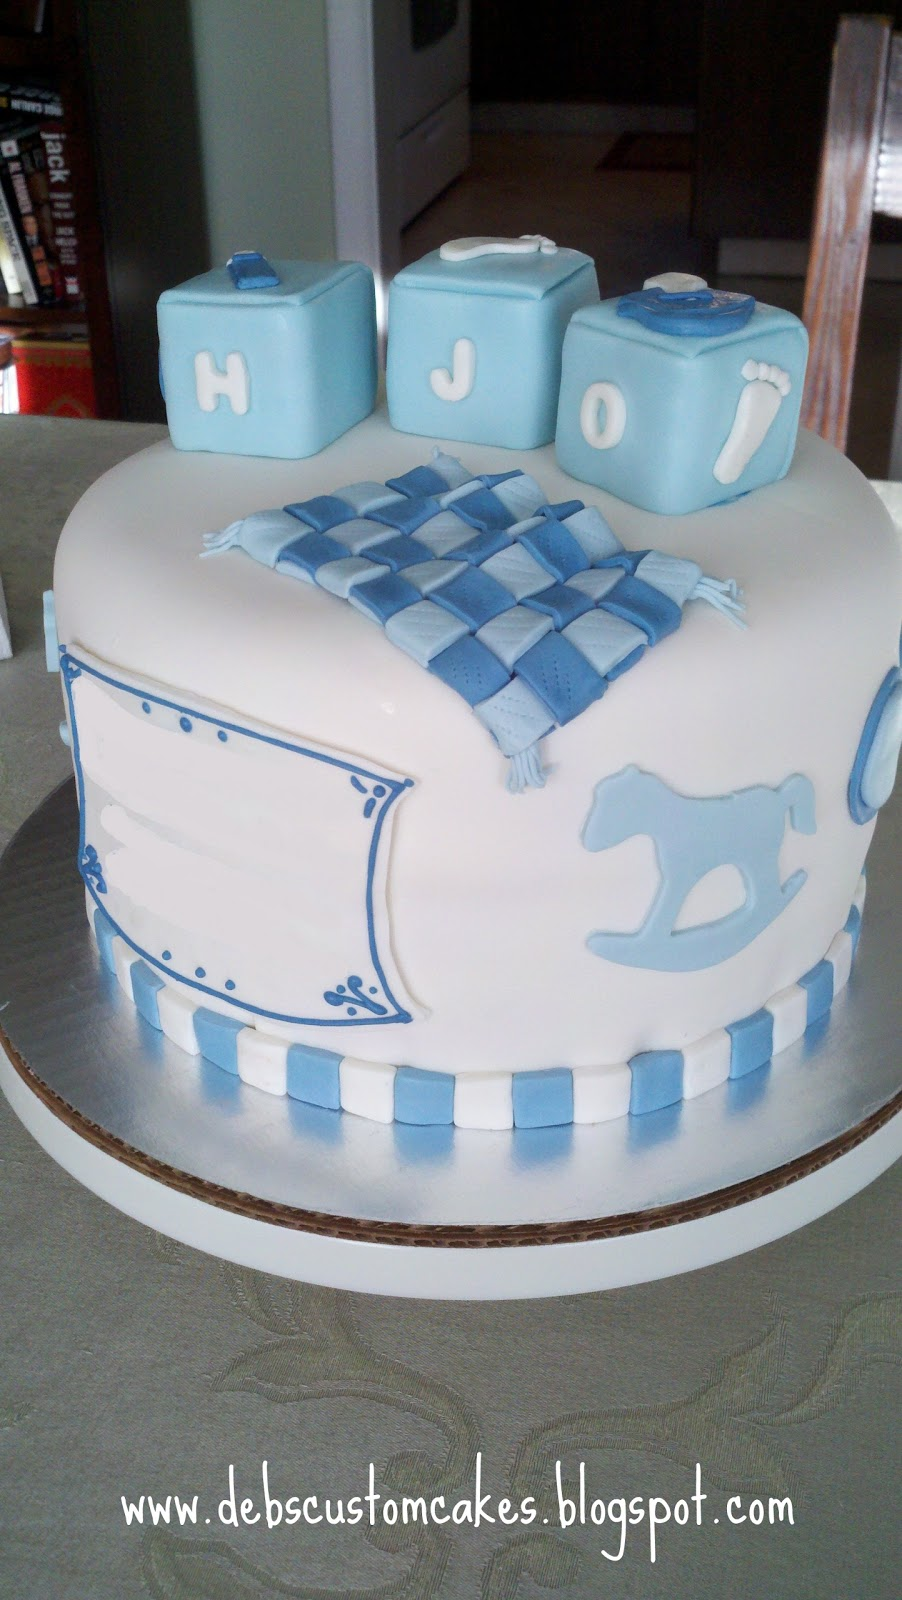 Images Of Newborn Baby Boy Cake : Deb s Custom Cakes: New Baby Boy Cake